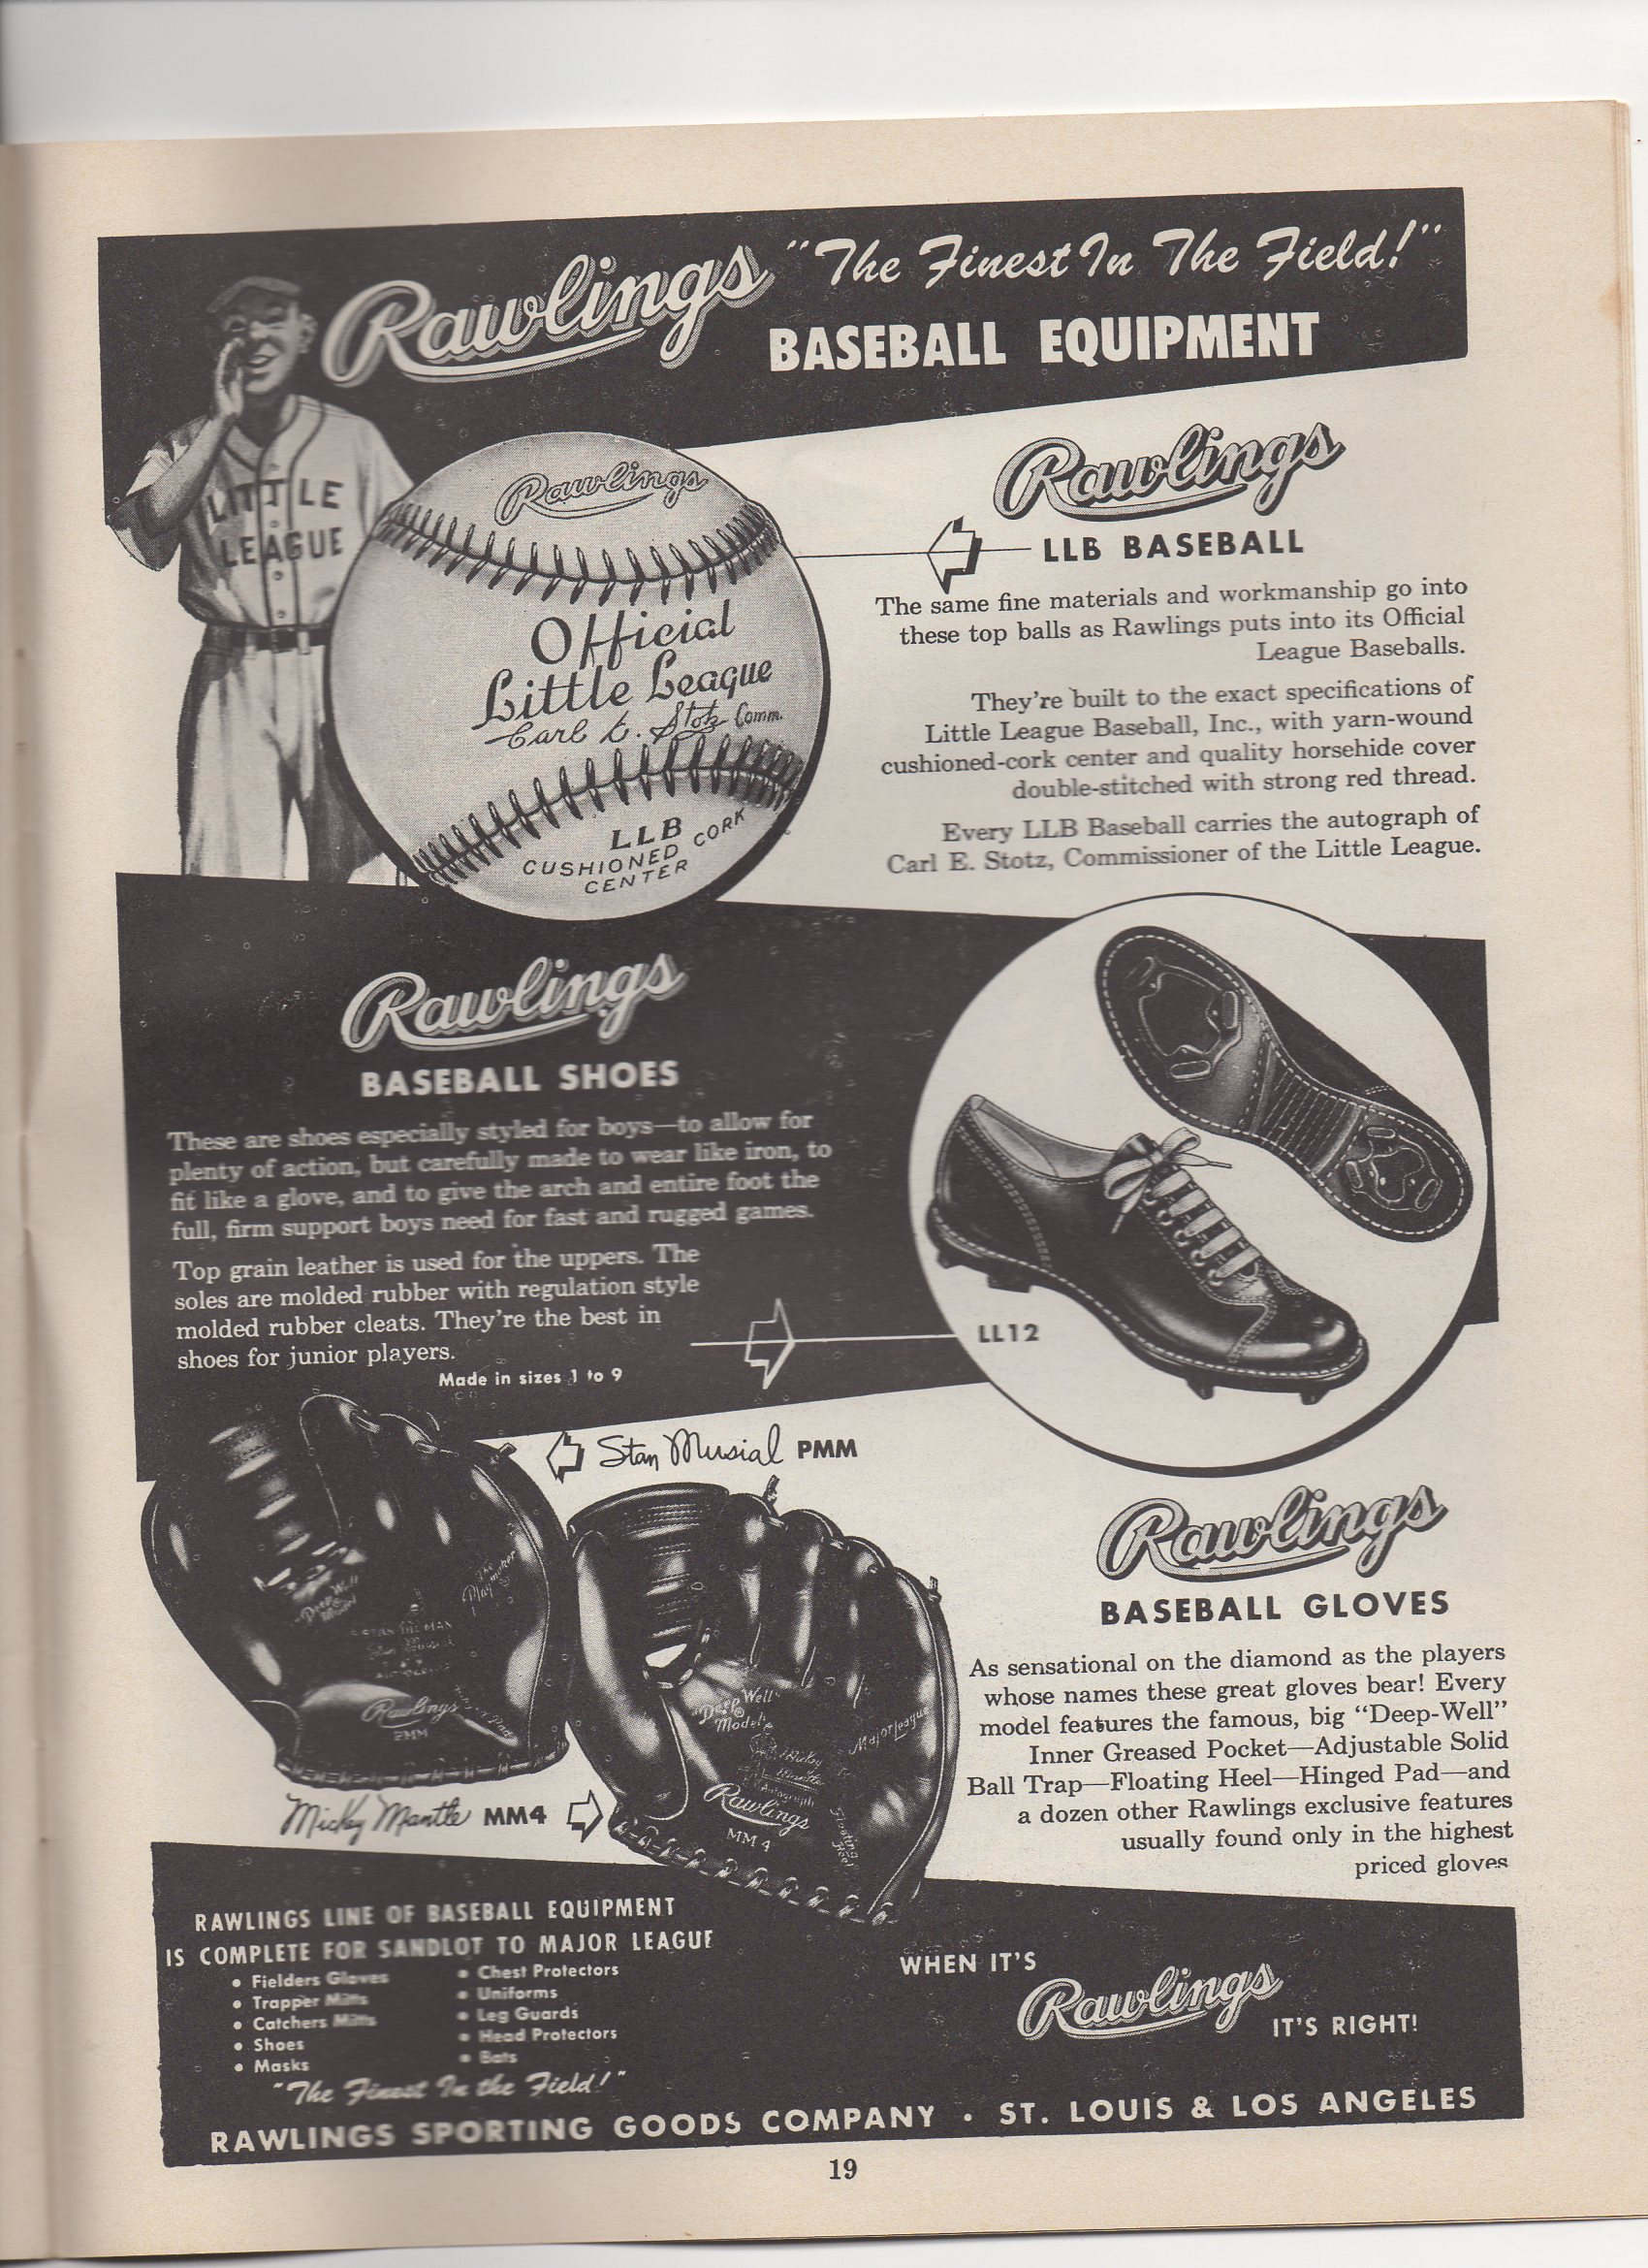 1954 little leaguer magazine, december